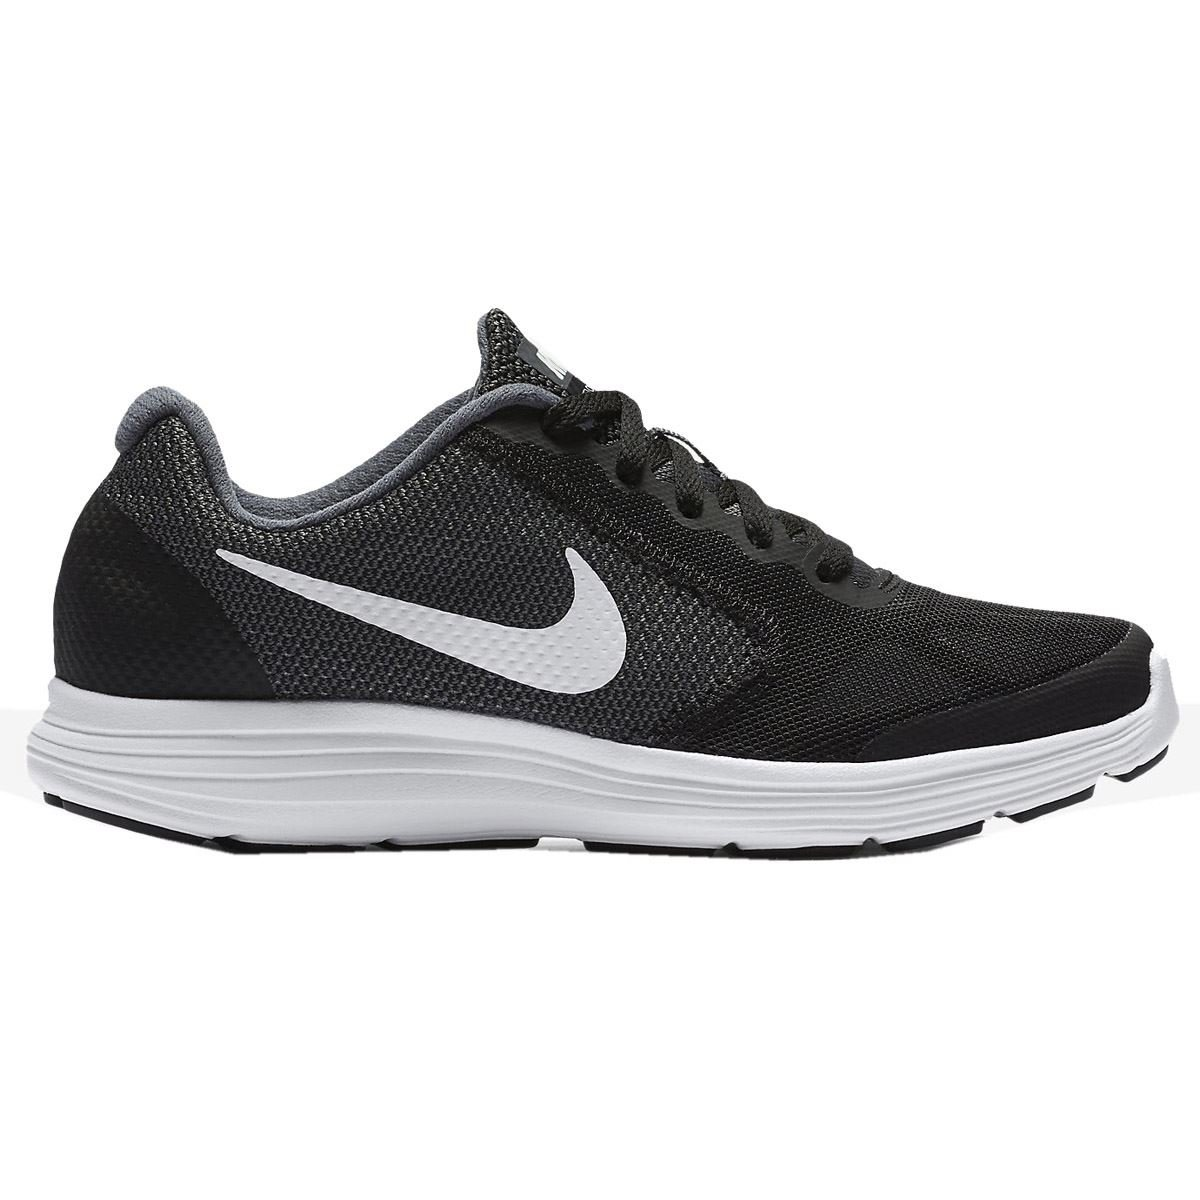 Nike Boy's Revolution 3 (GS) Running Shoe Dark Grey/White/Black/Pure Platinum Size 6.5 M US